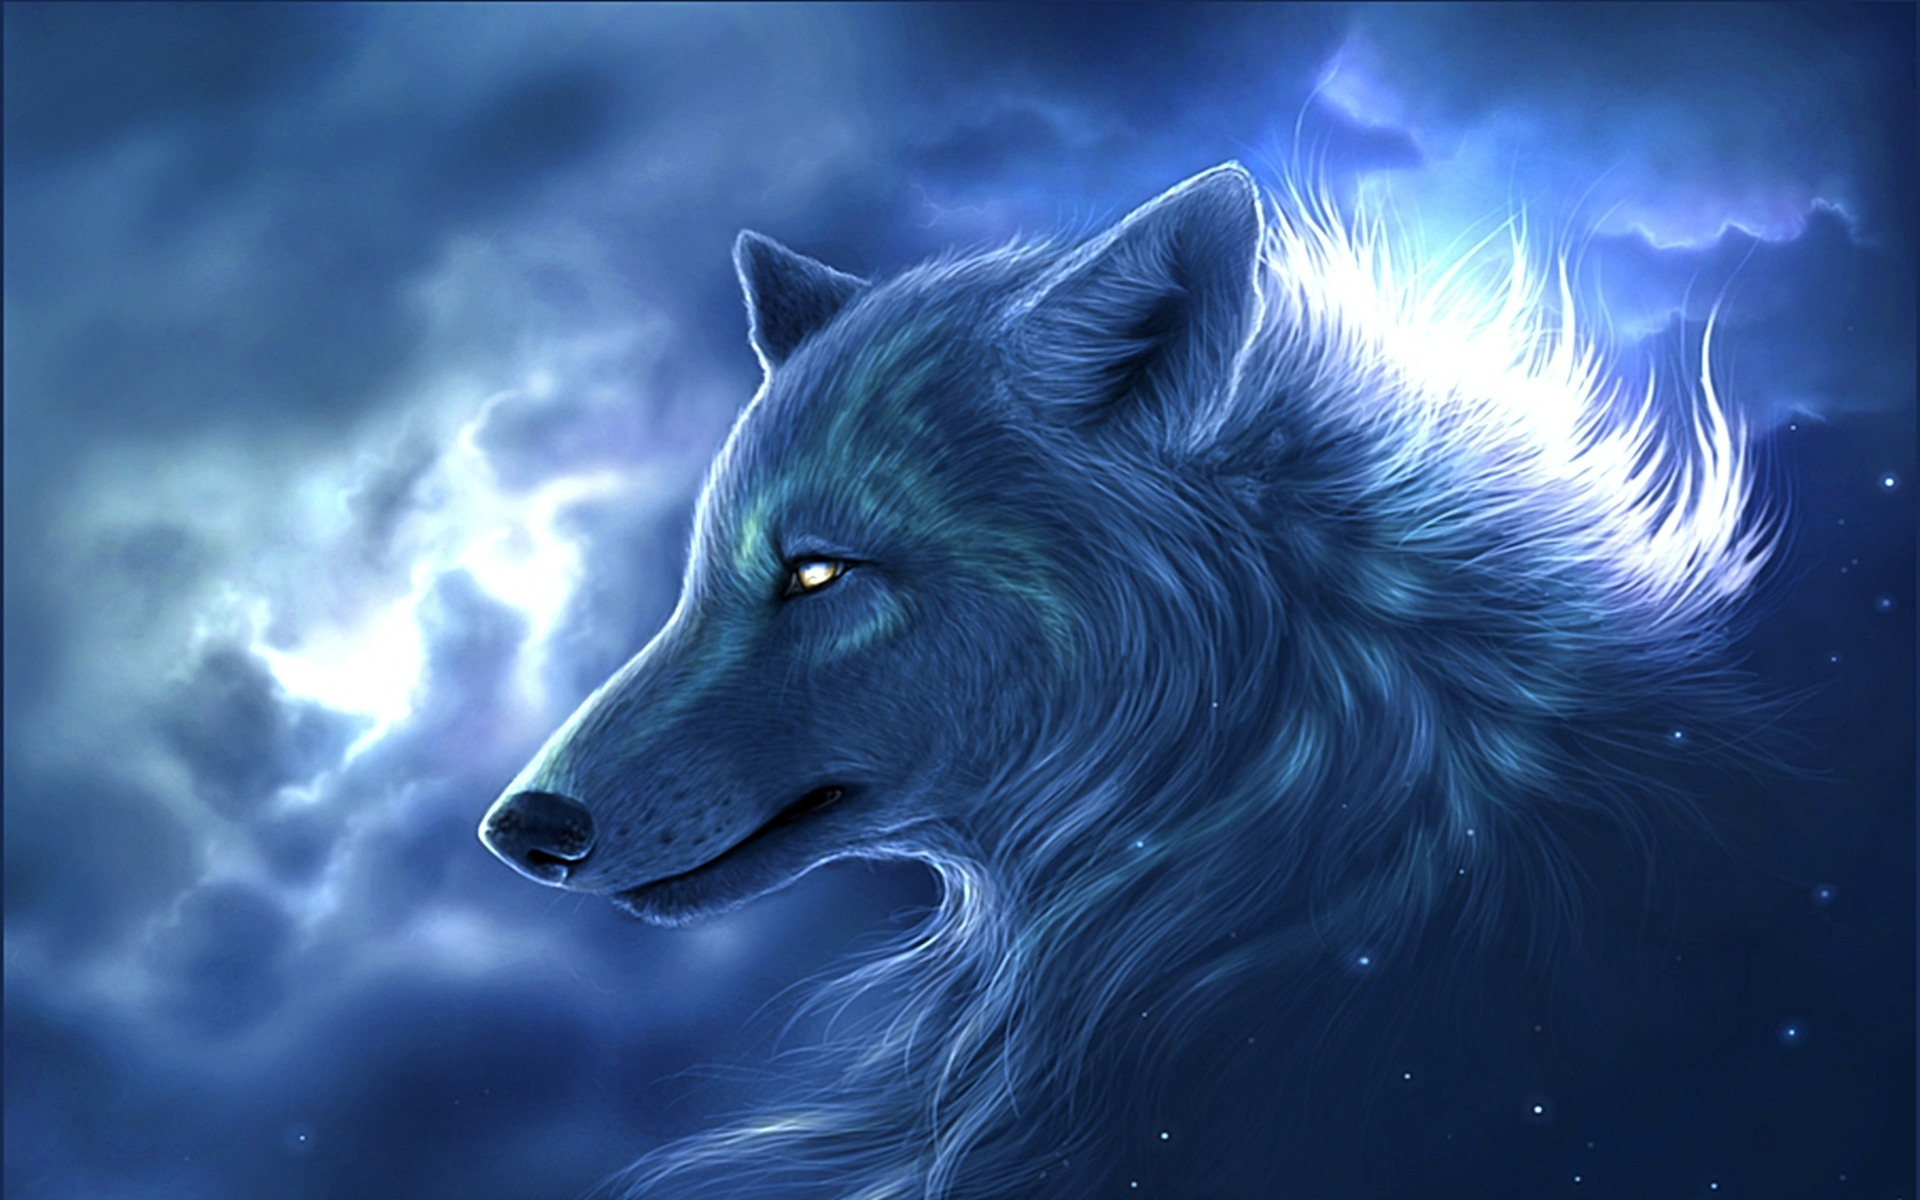 44 Animated Wolf Desktop Wallpaper On Wallpapersafari